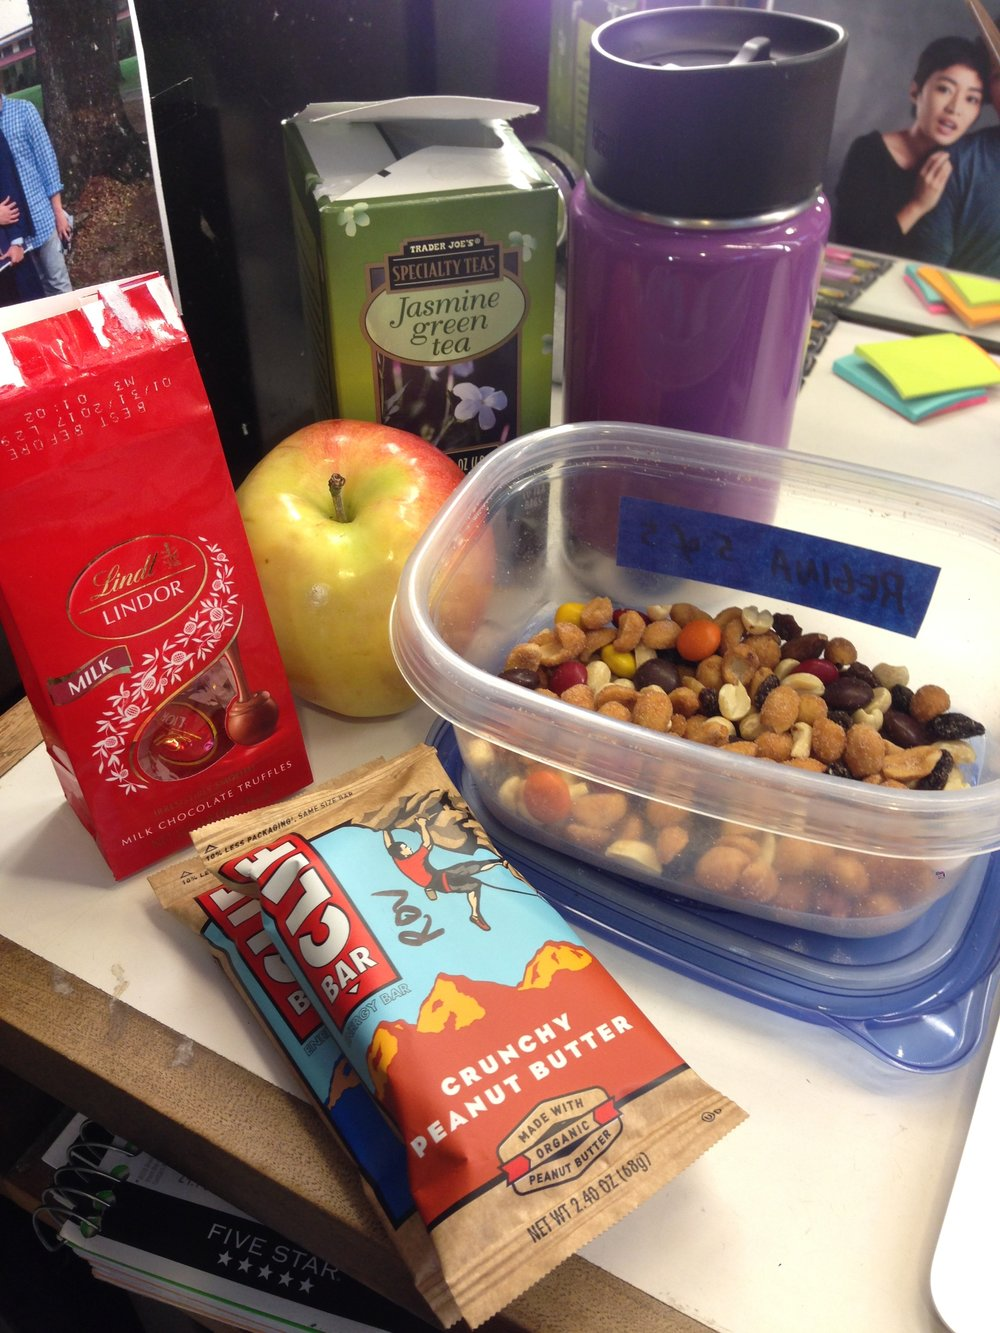 Must-have snacks to sustain me for the day include peanuts, Clif bars, fruits and tea.